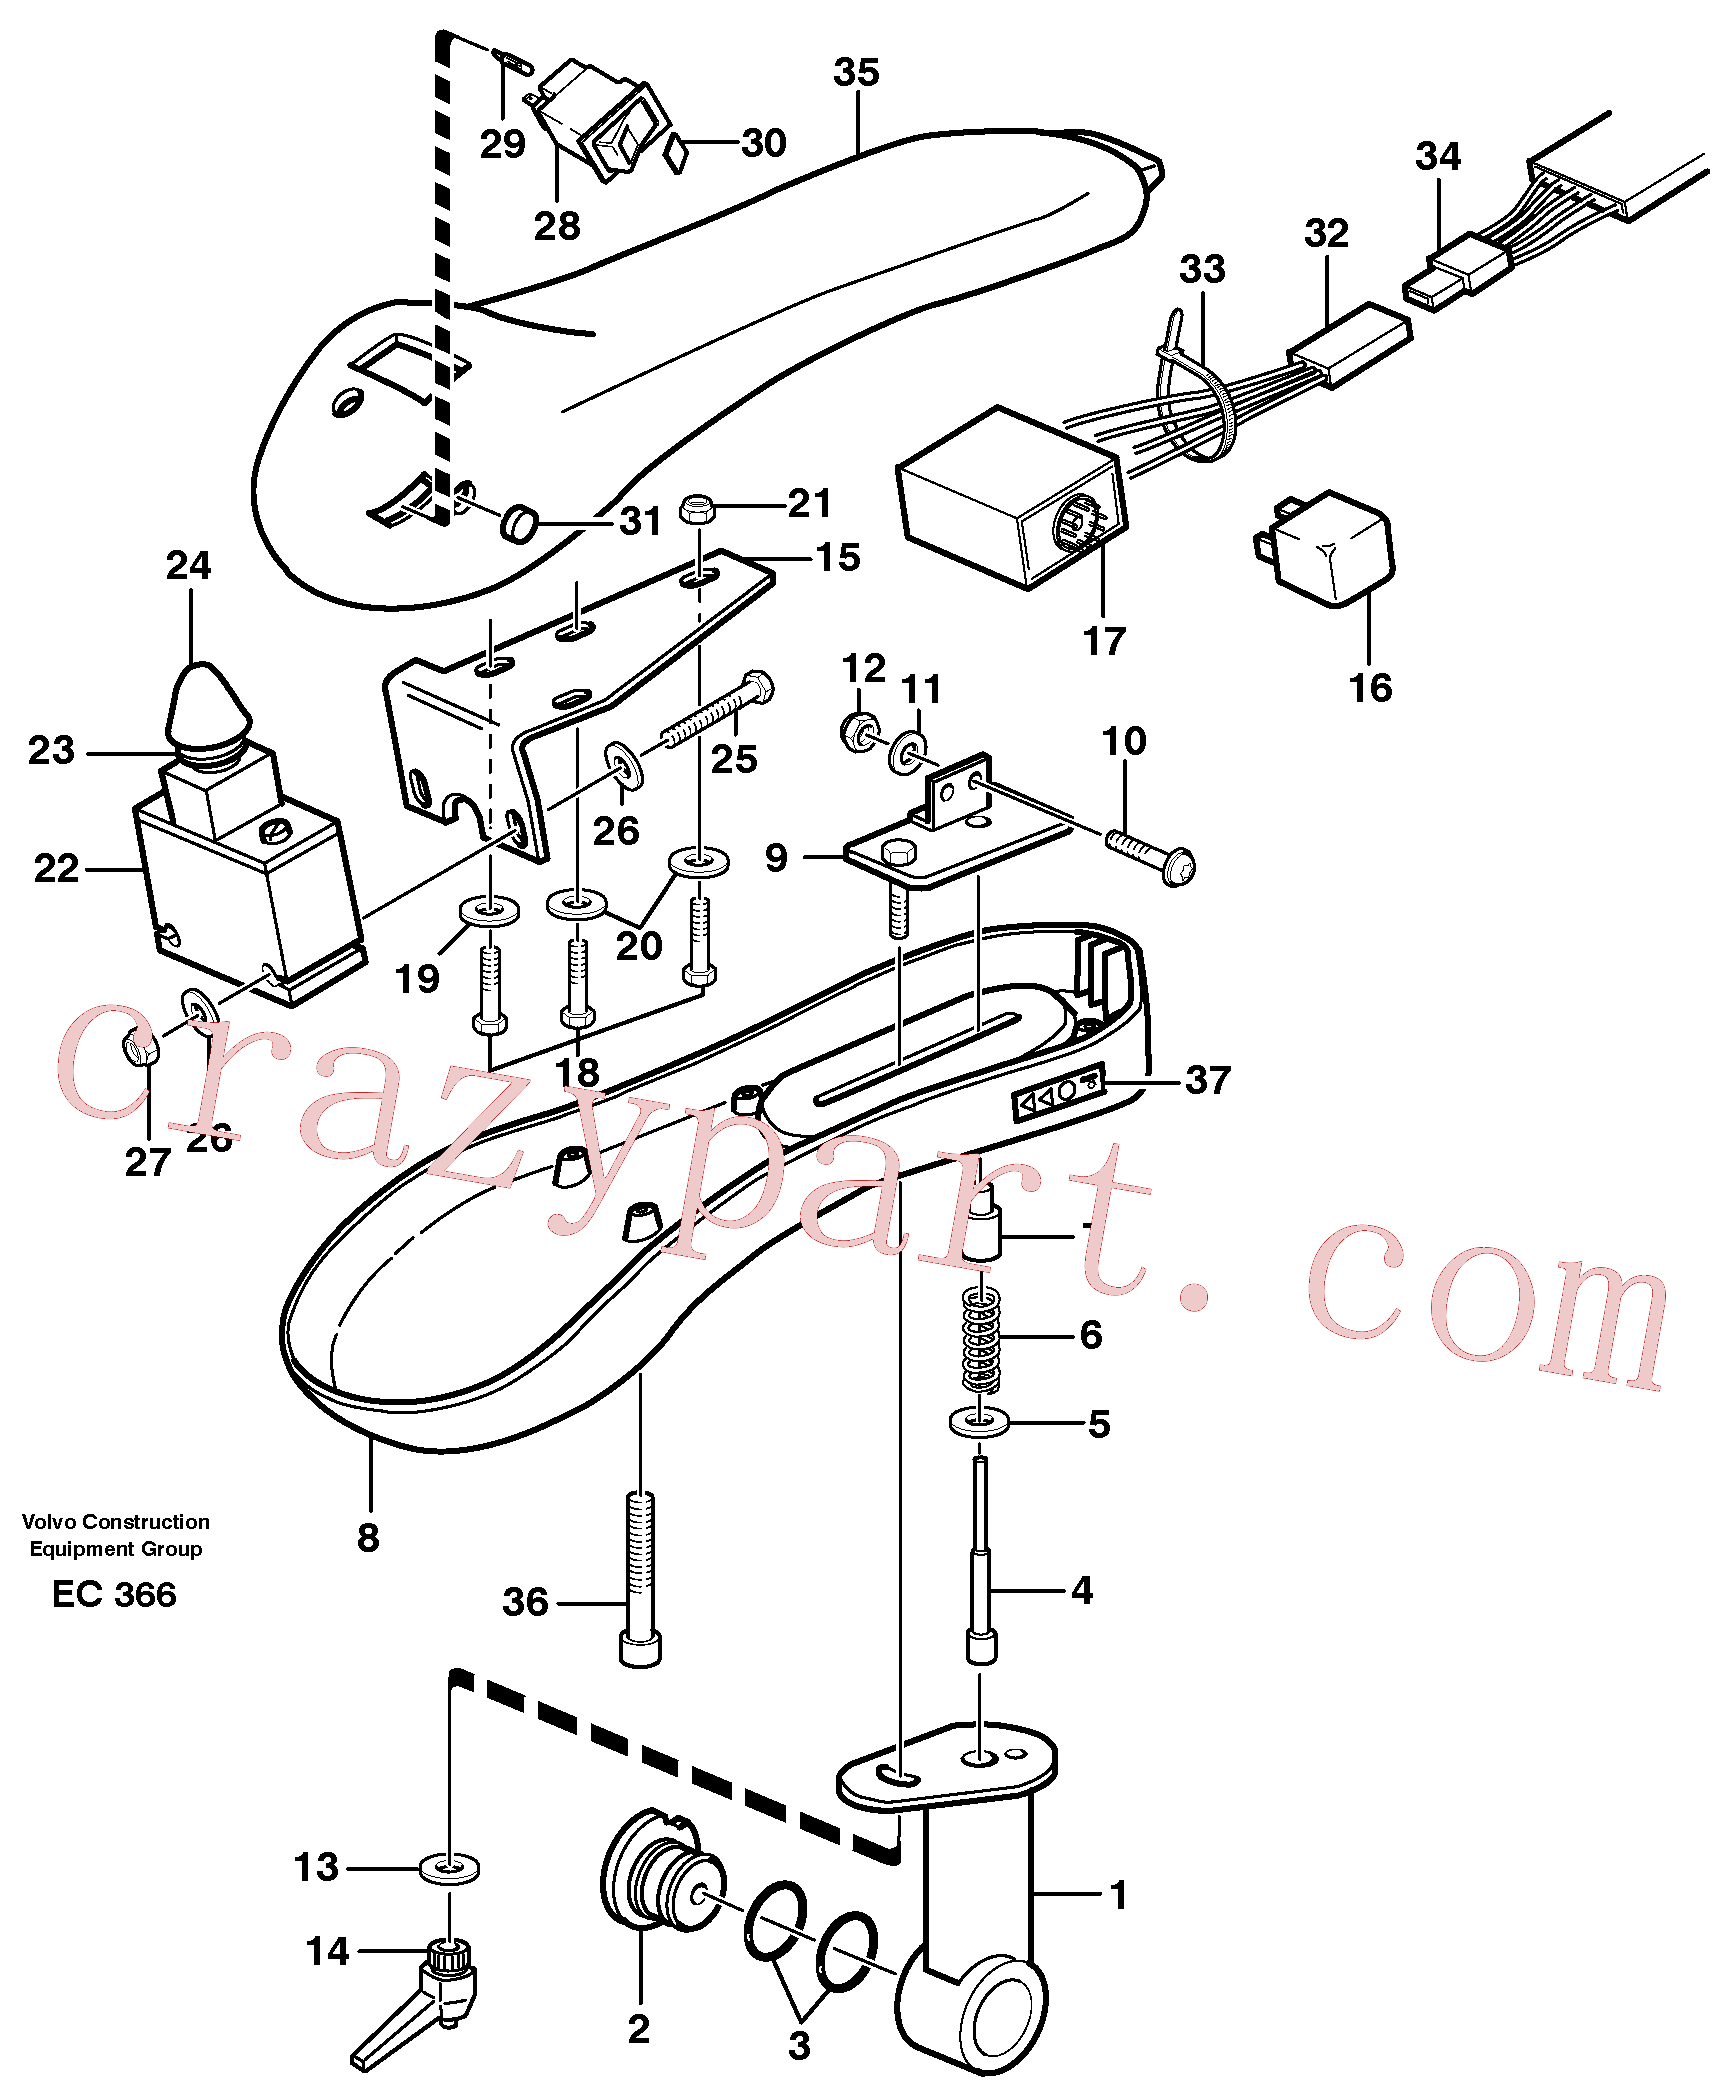 VOE959213 for Volvo Arm rest.(EC366 assembly)